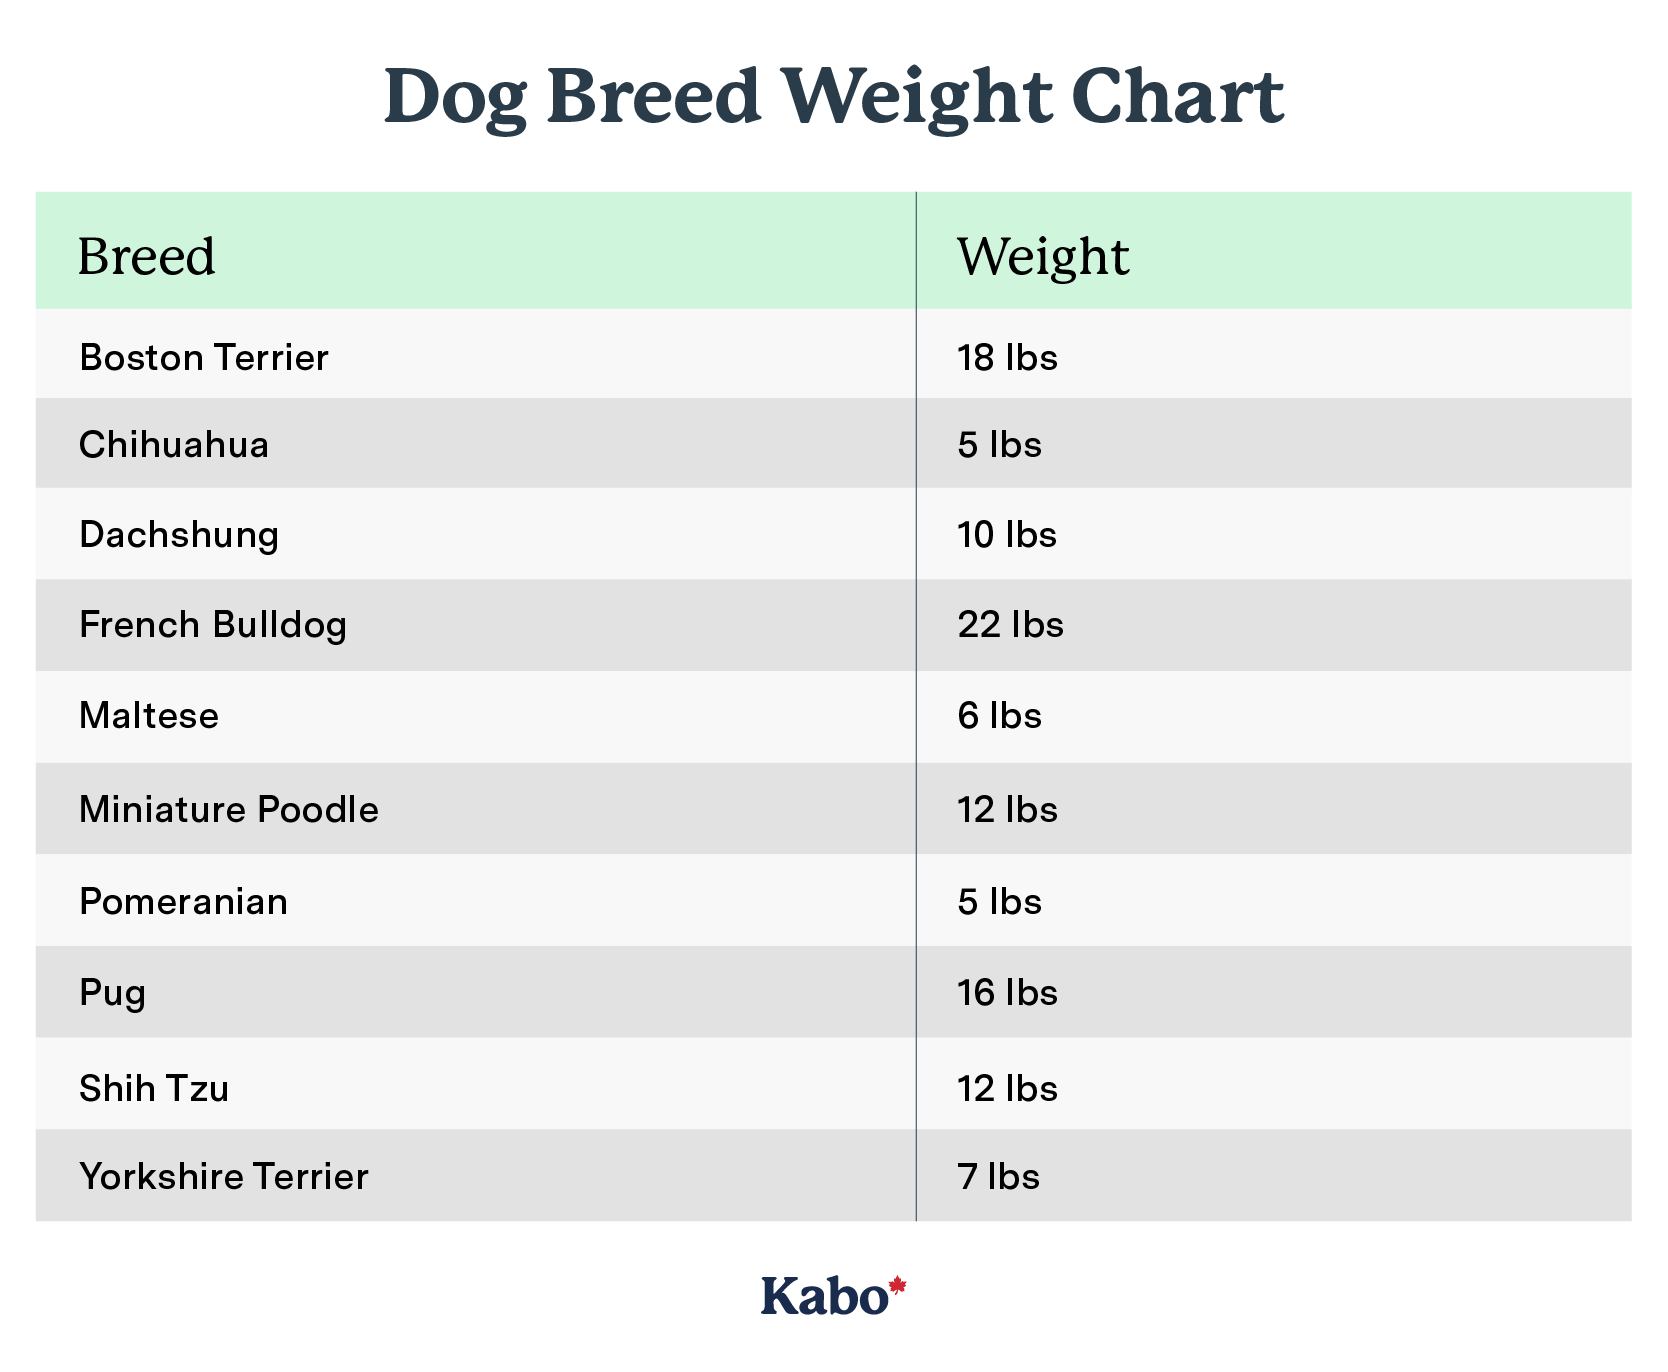 Dog breed weight chart